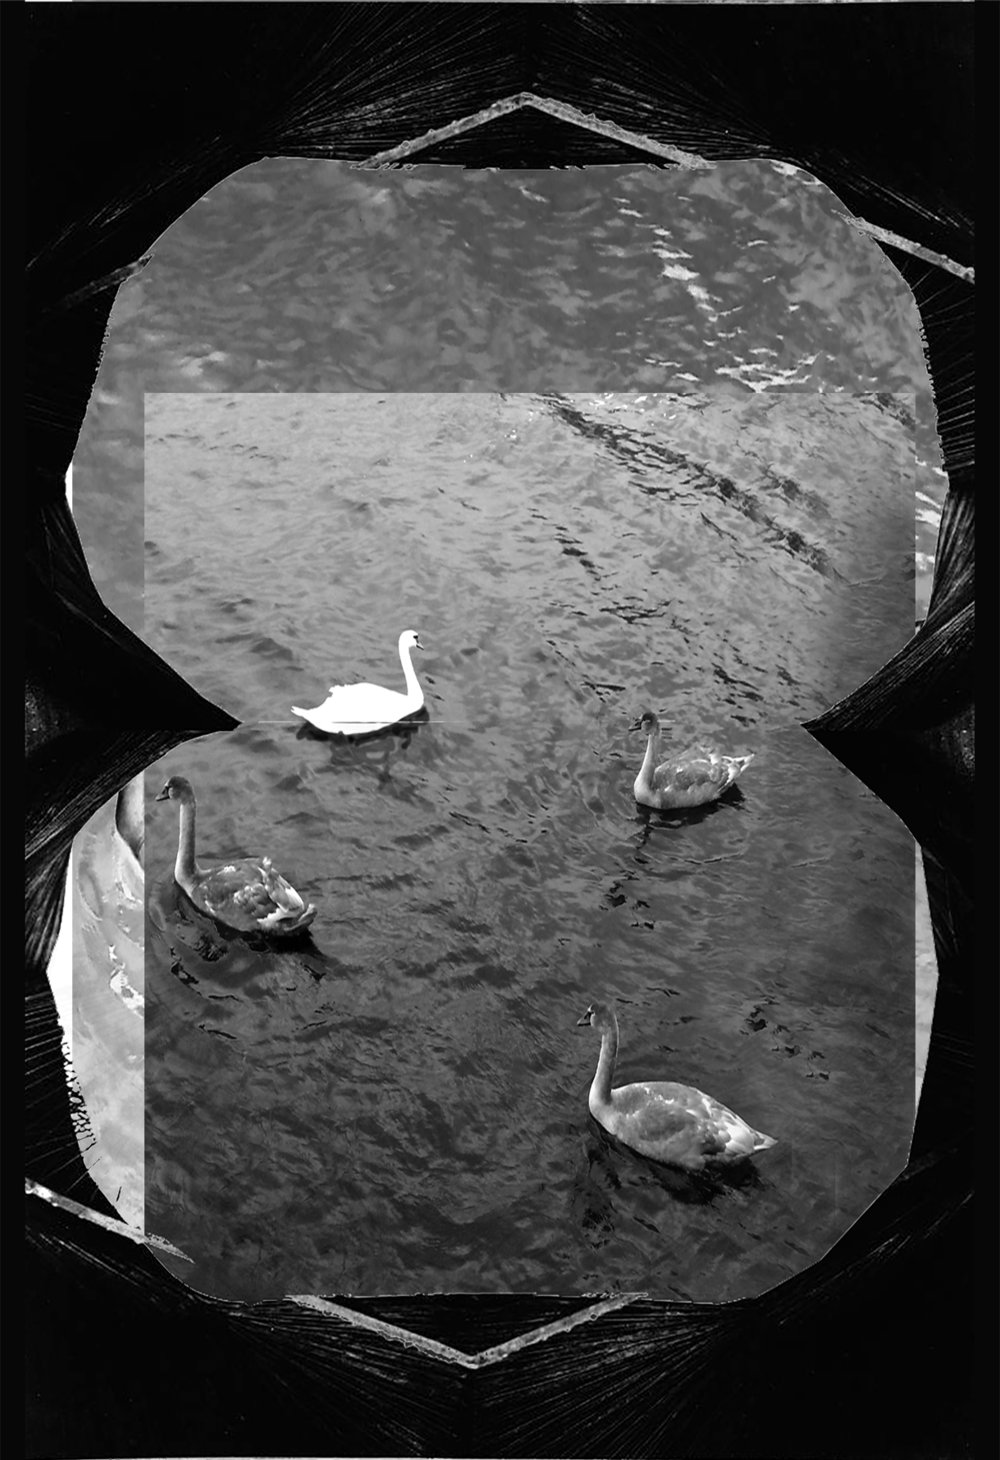 SWANS AND CAVE_1_63x43cm.jpg